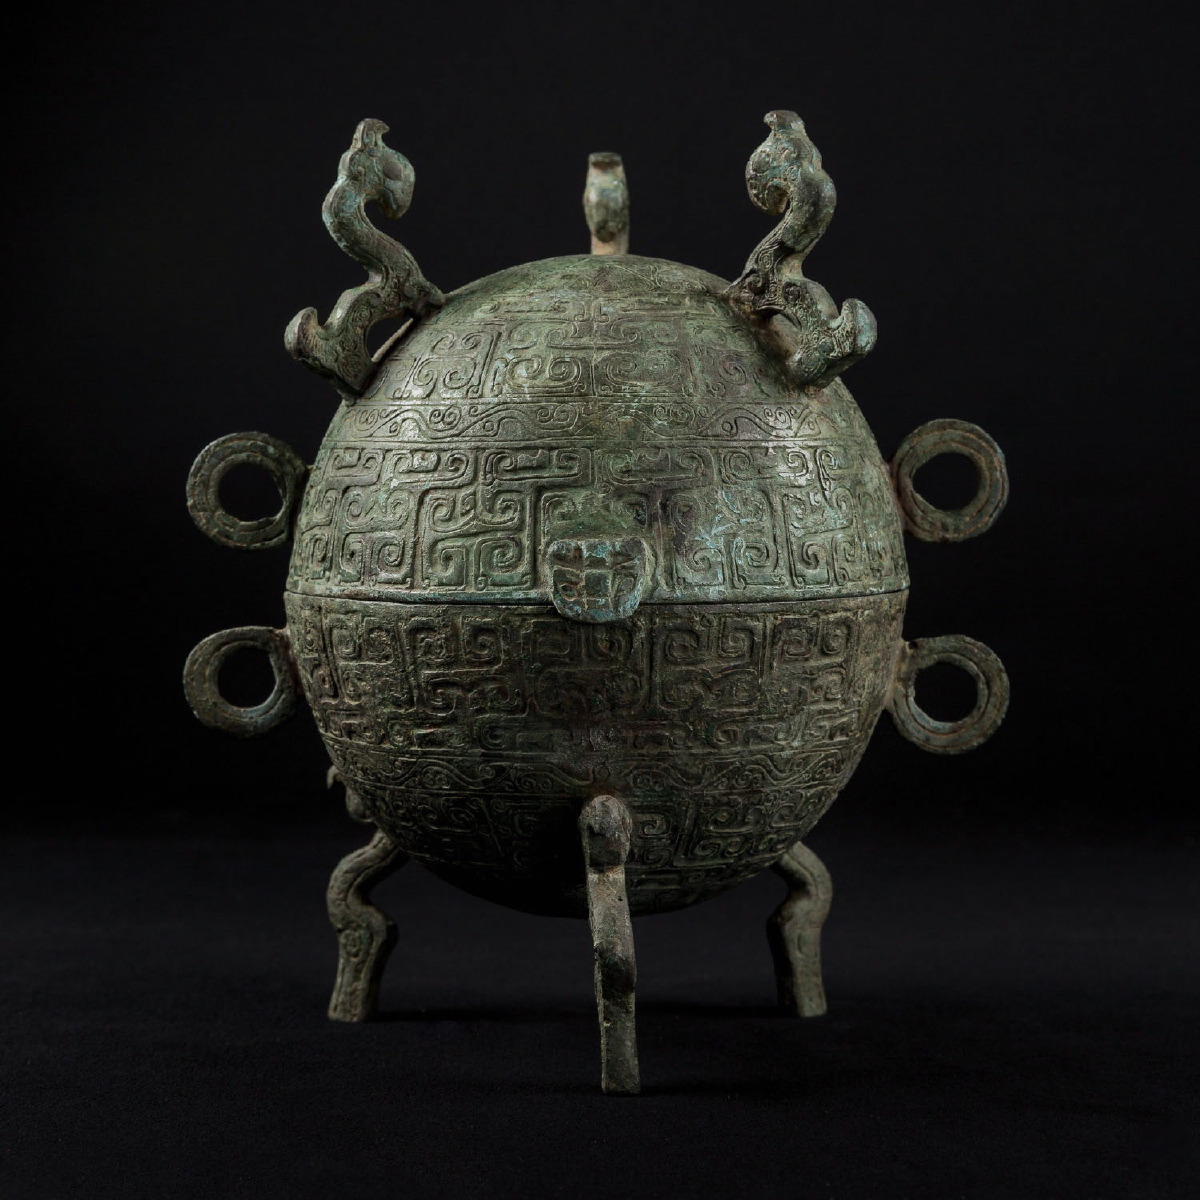 Photo of dui-bronze-vessel-shang-dynasty-bronze-china-museum-galerie-golconda-archeology